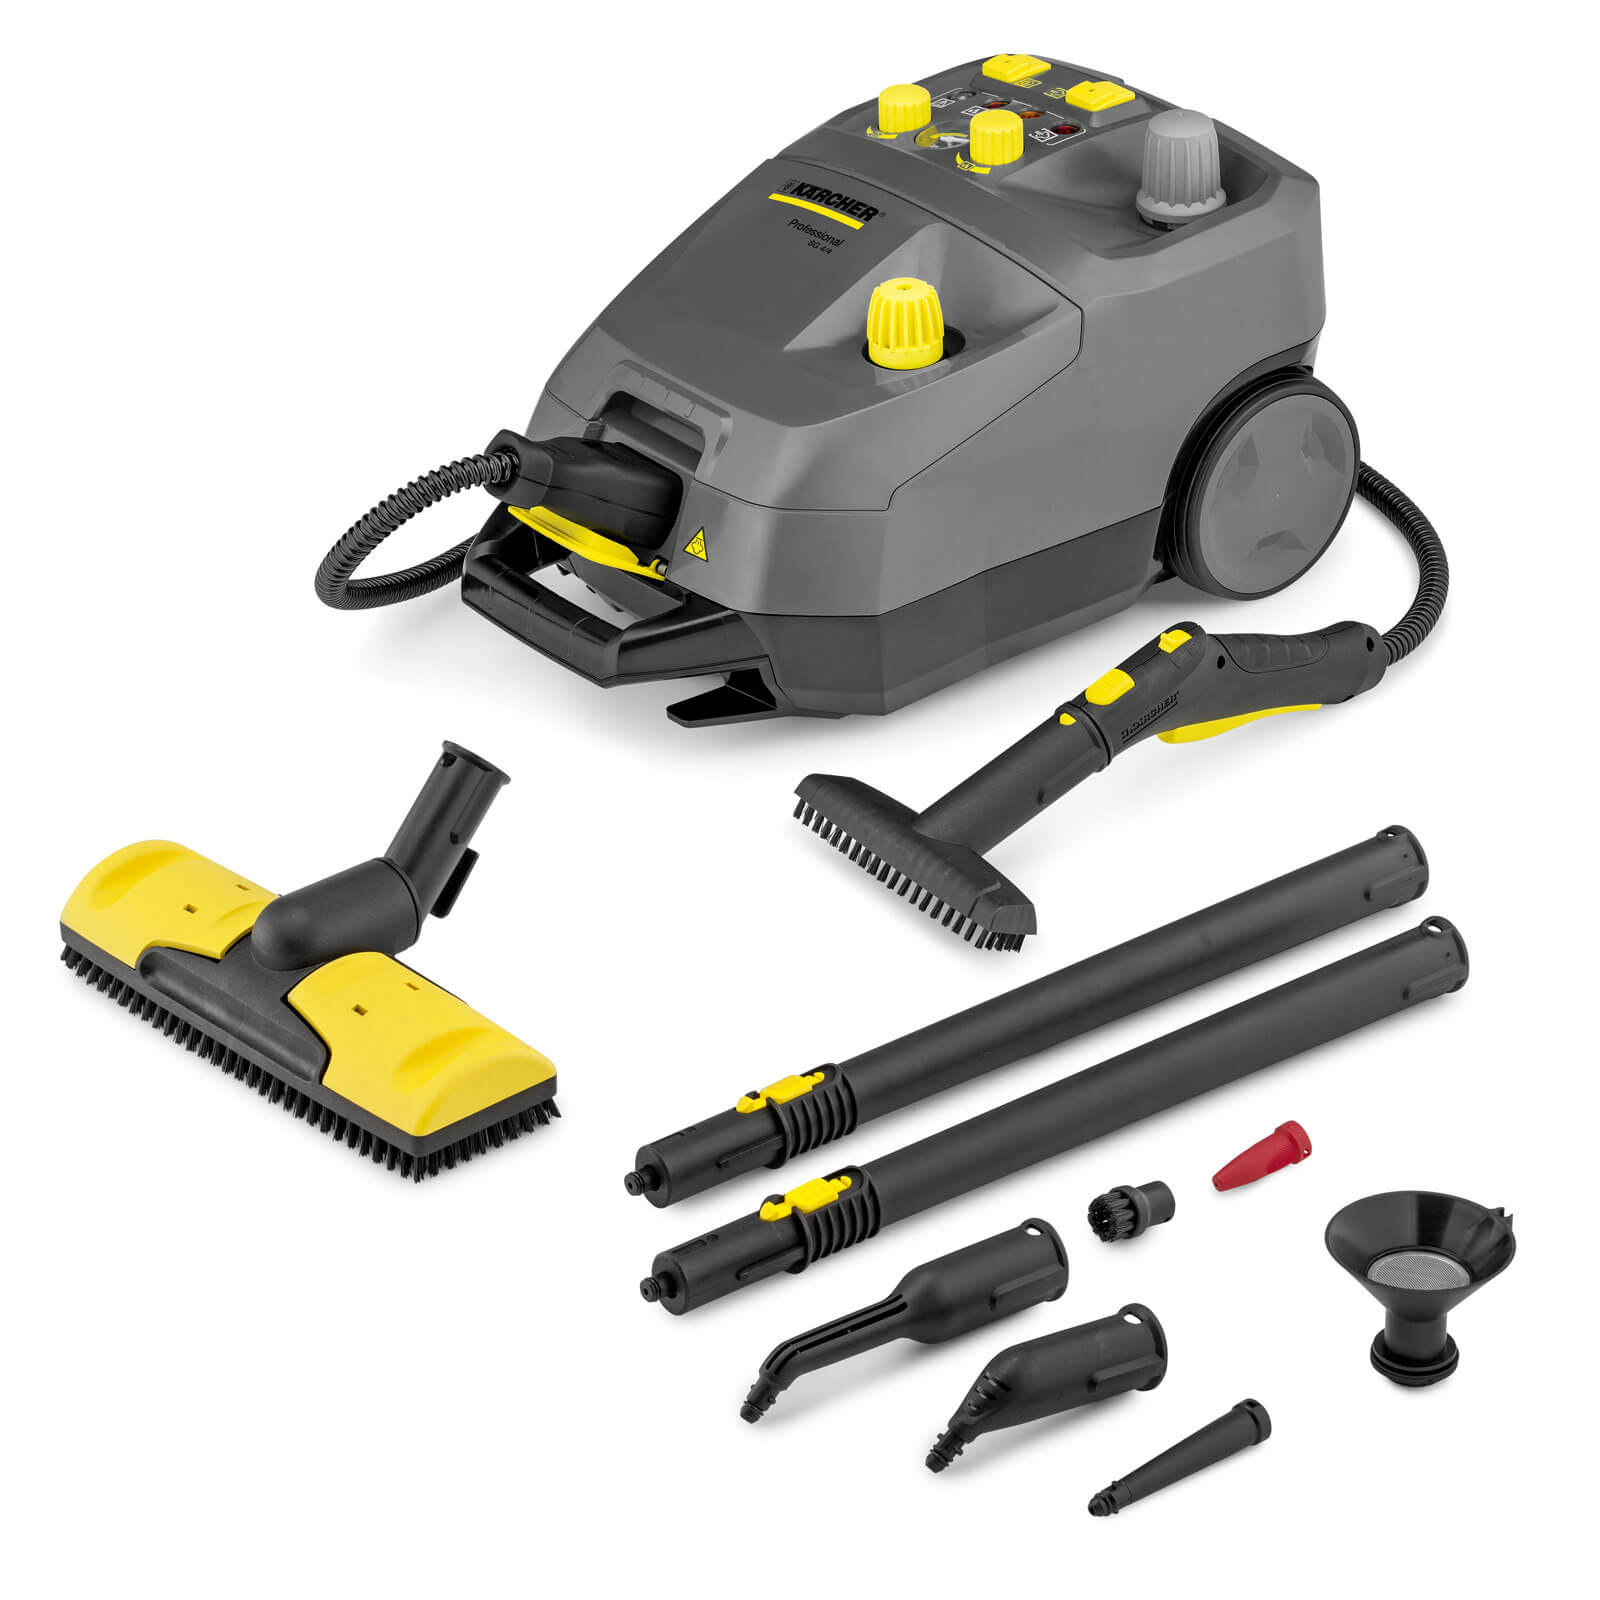 Karcher SG 44 Professional Steam Cleaner 240v